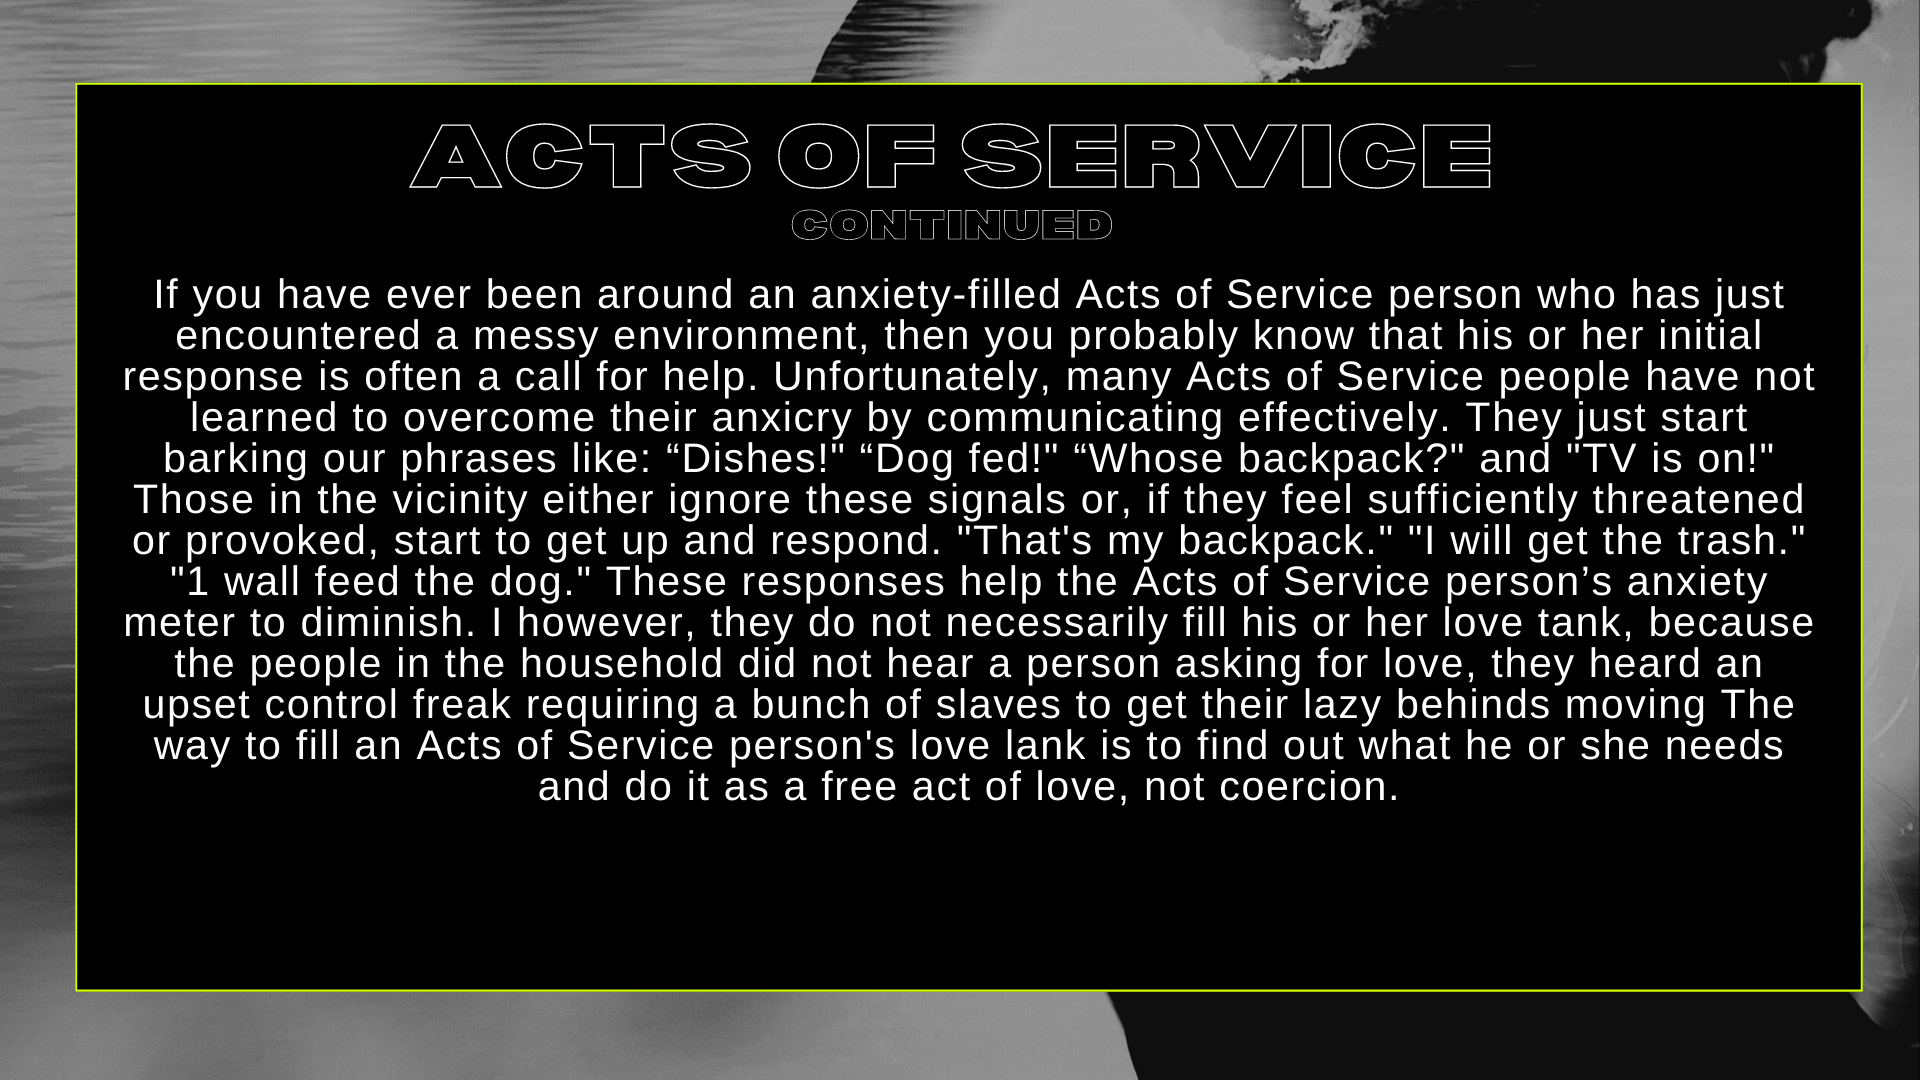 ACTS OF SERVICE CONT...